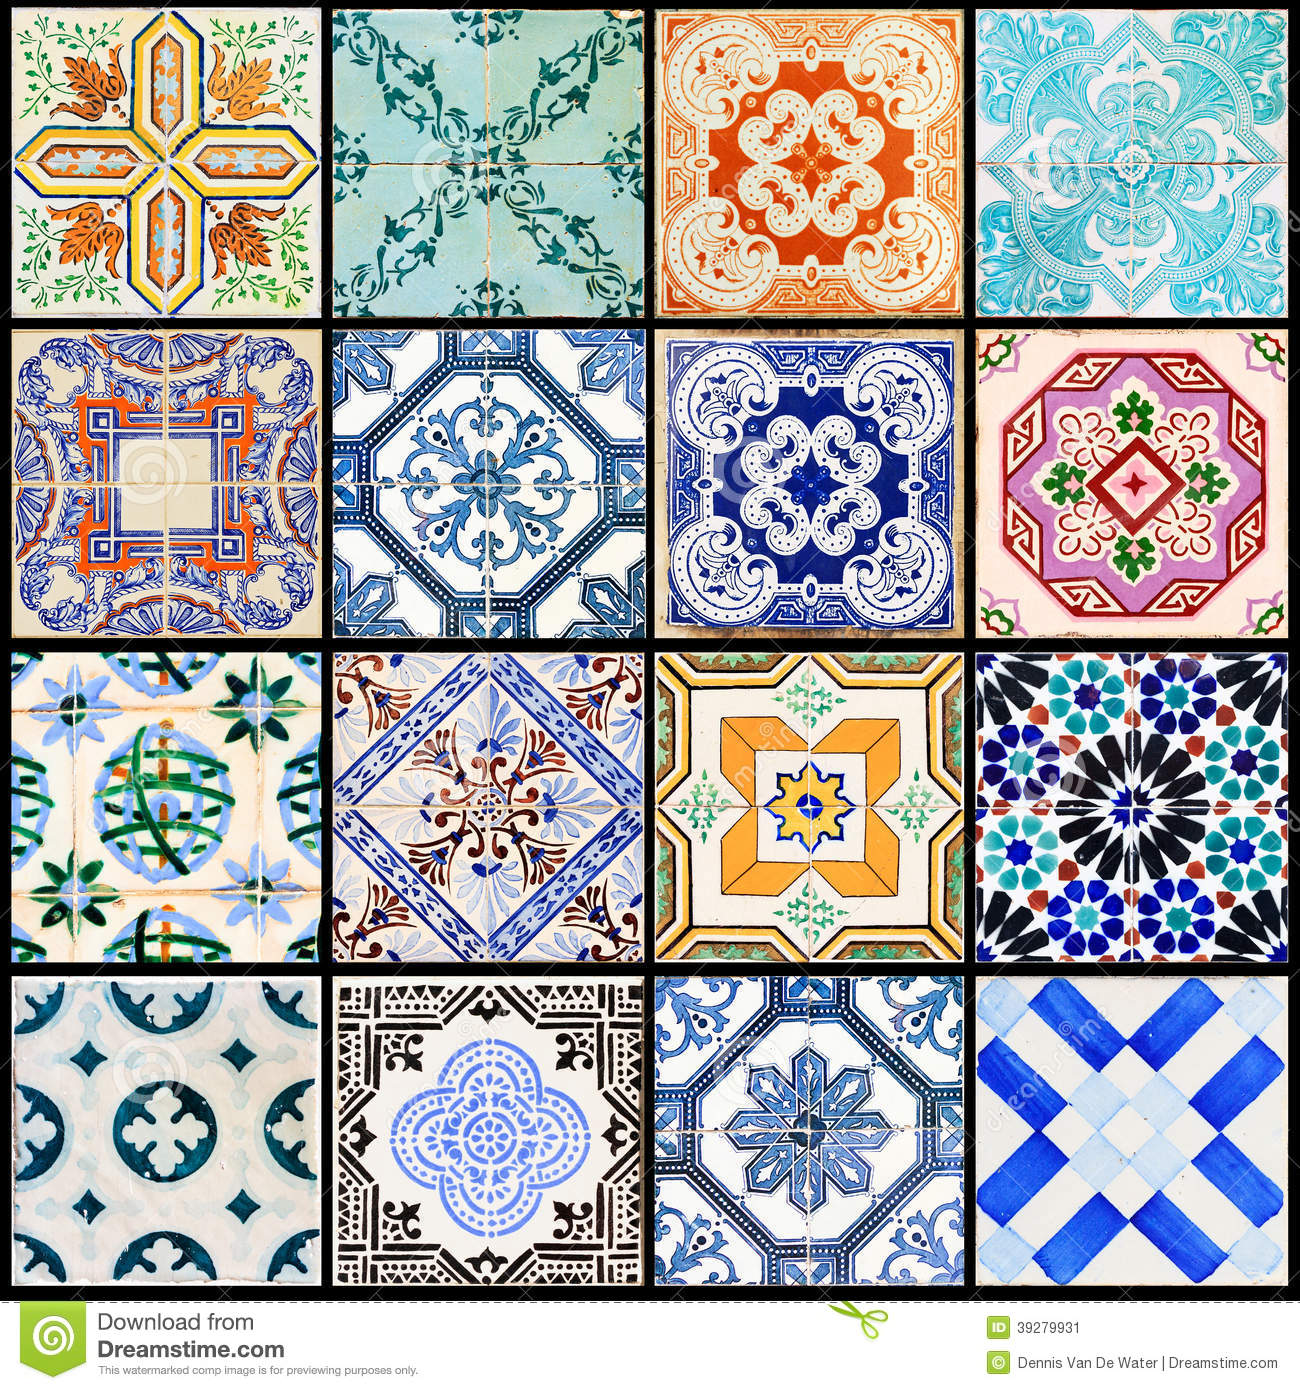 Lisbon tiles collage black stock image. Image of decoration - 39279931